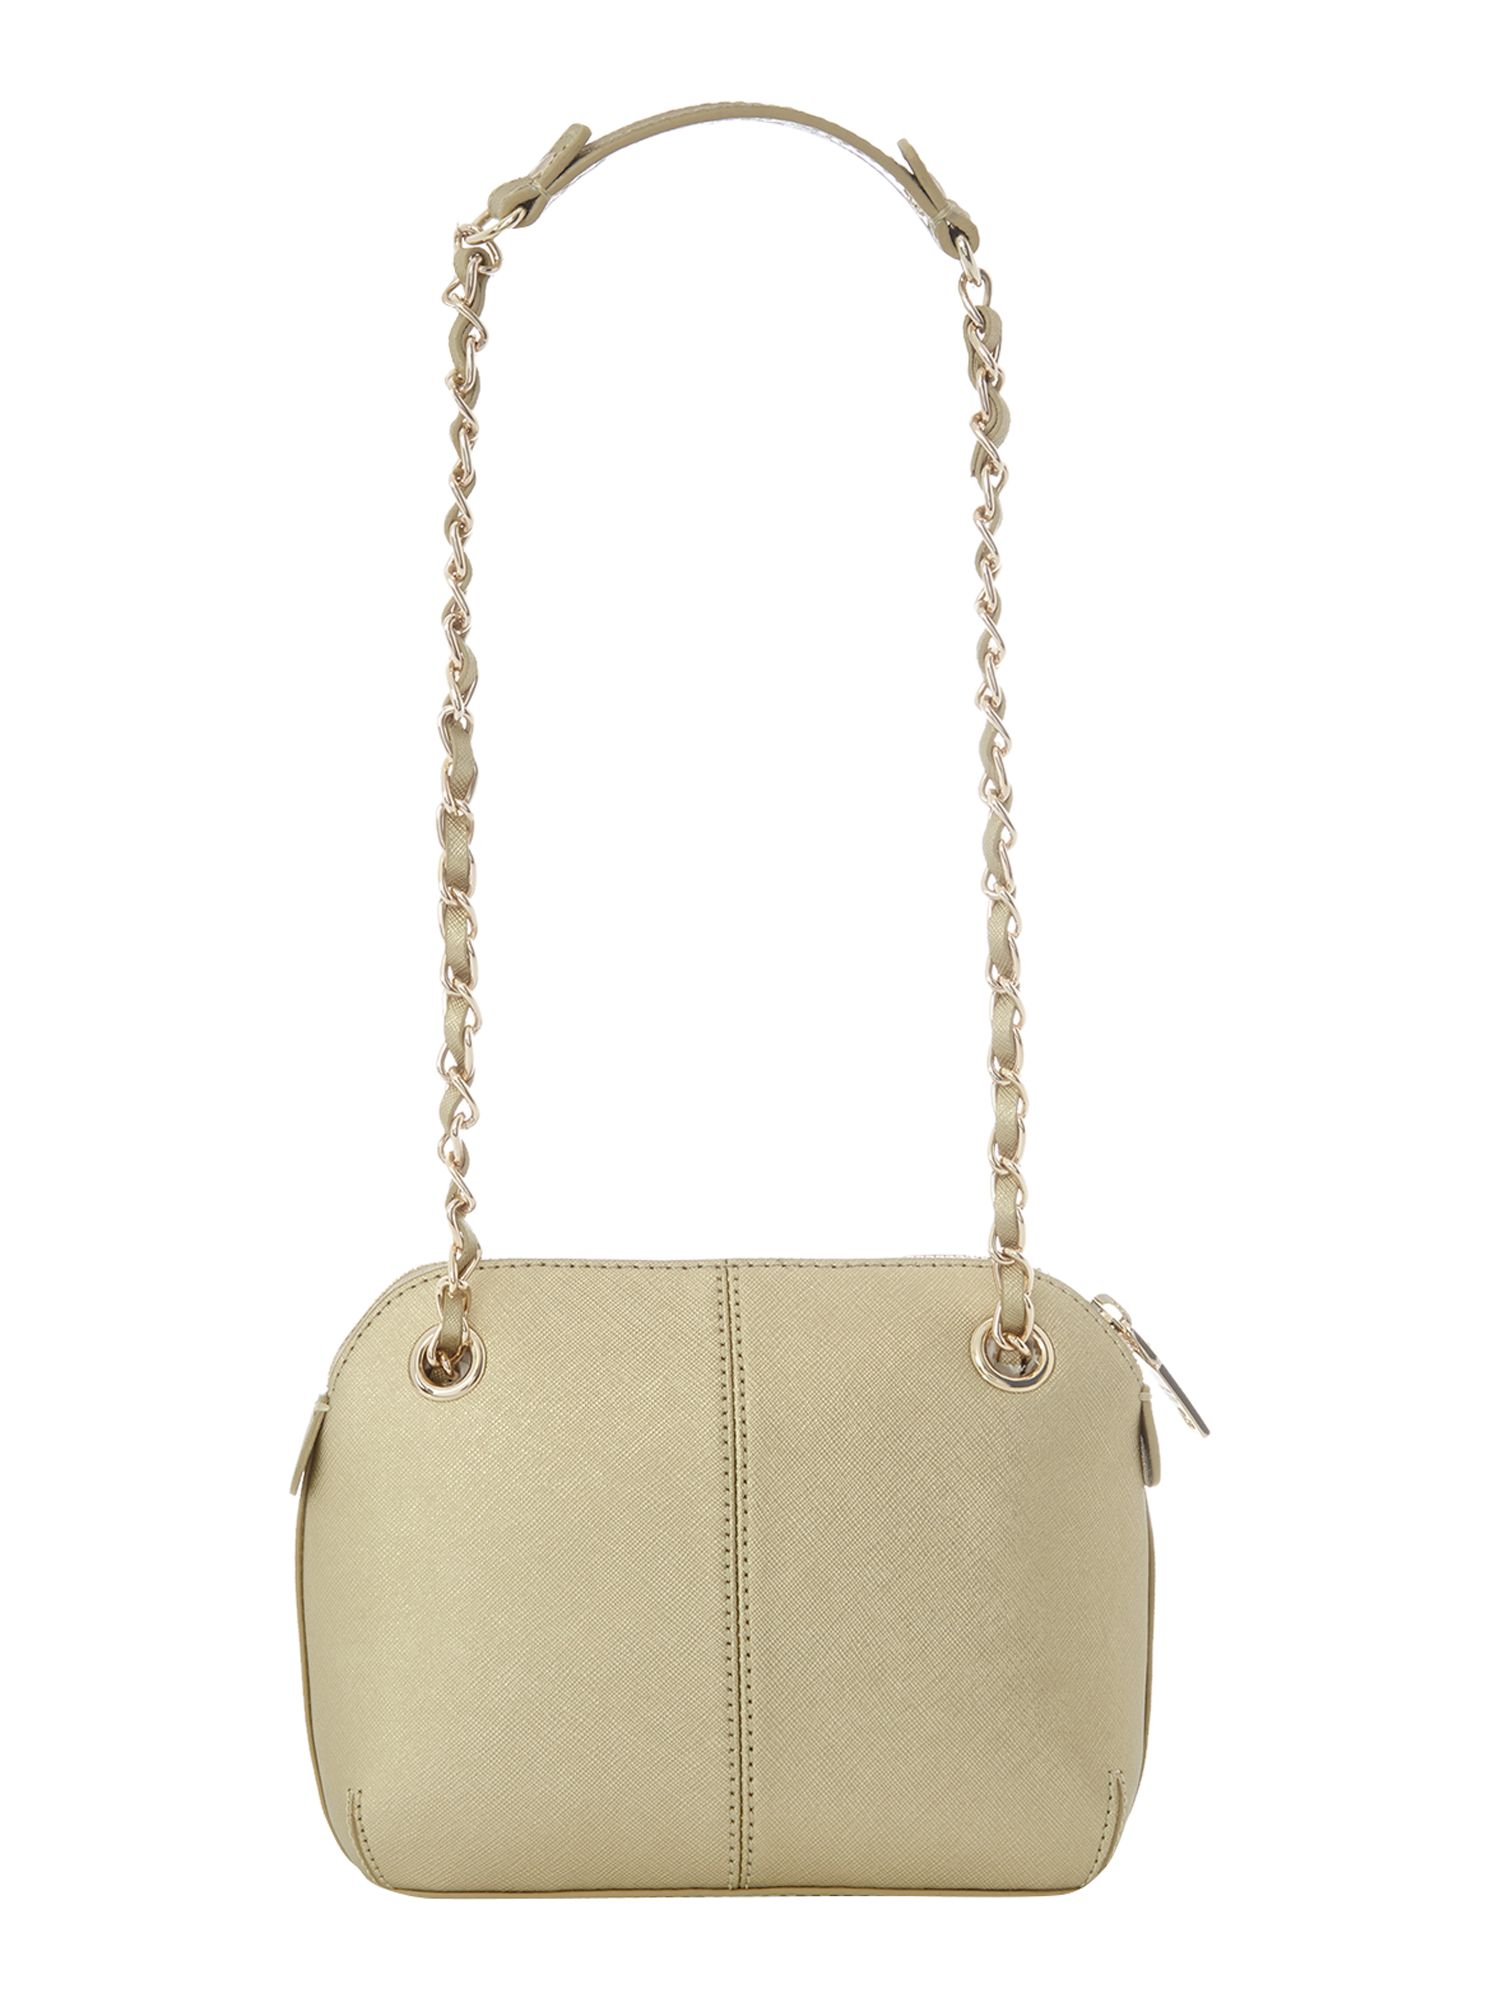 Saffiano gold small crossbody bag